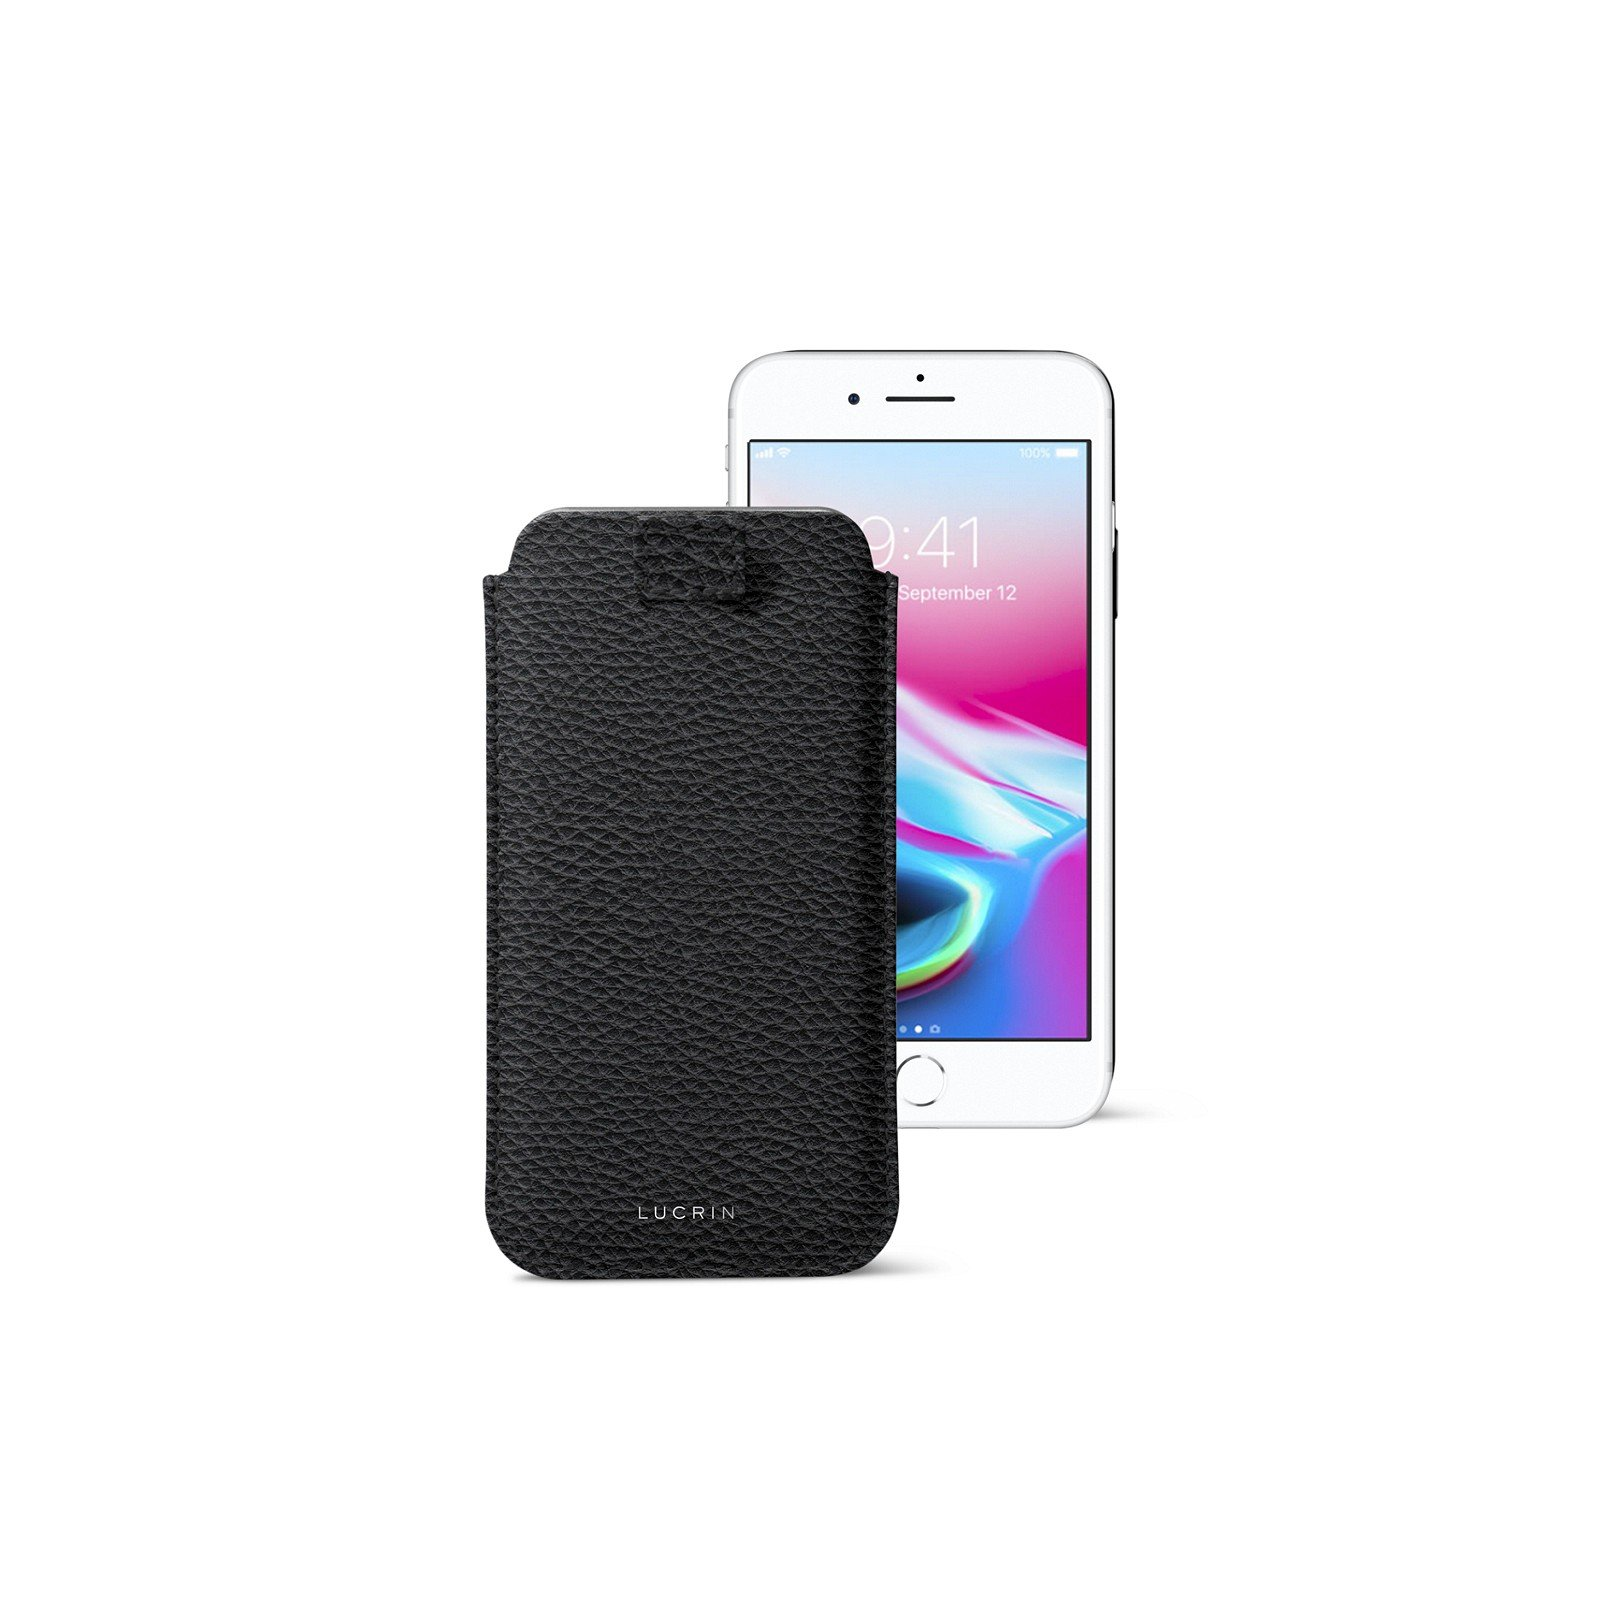 Lucrin - iPhone 8/7/ 6 Ultra Slim Compatible Sleeve, Protective Soft Case with Pull-Up Strap - Black - Granulated Leather by Lucrin